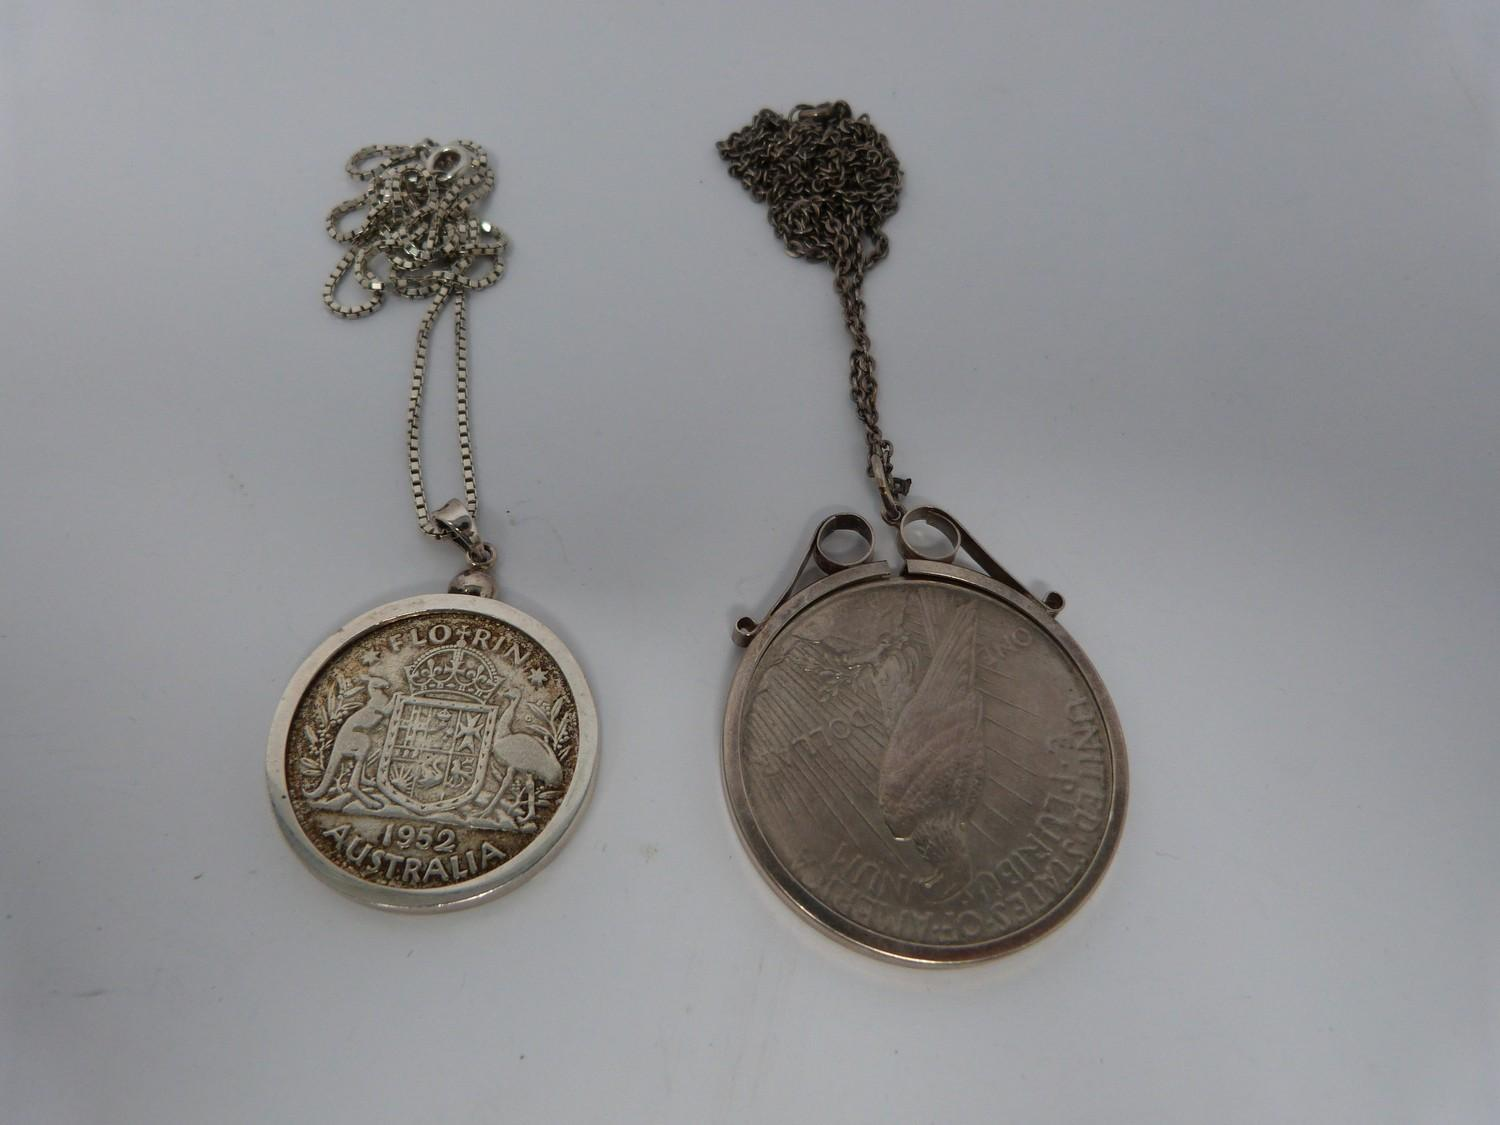 Two silver coins in silver and white metal mounts on silver chains, an American one dollar coin,